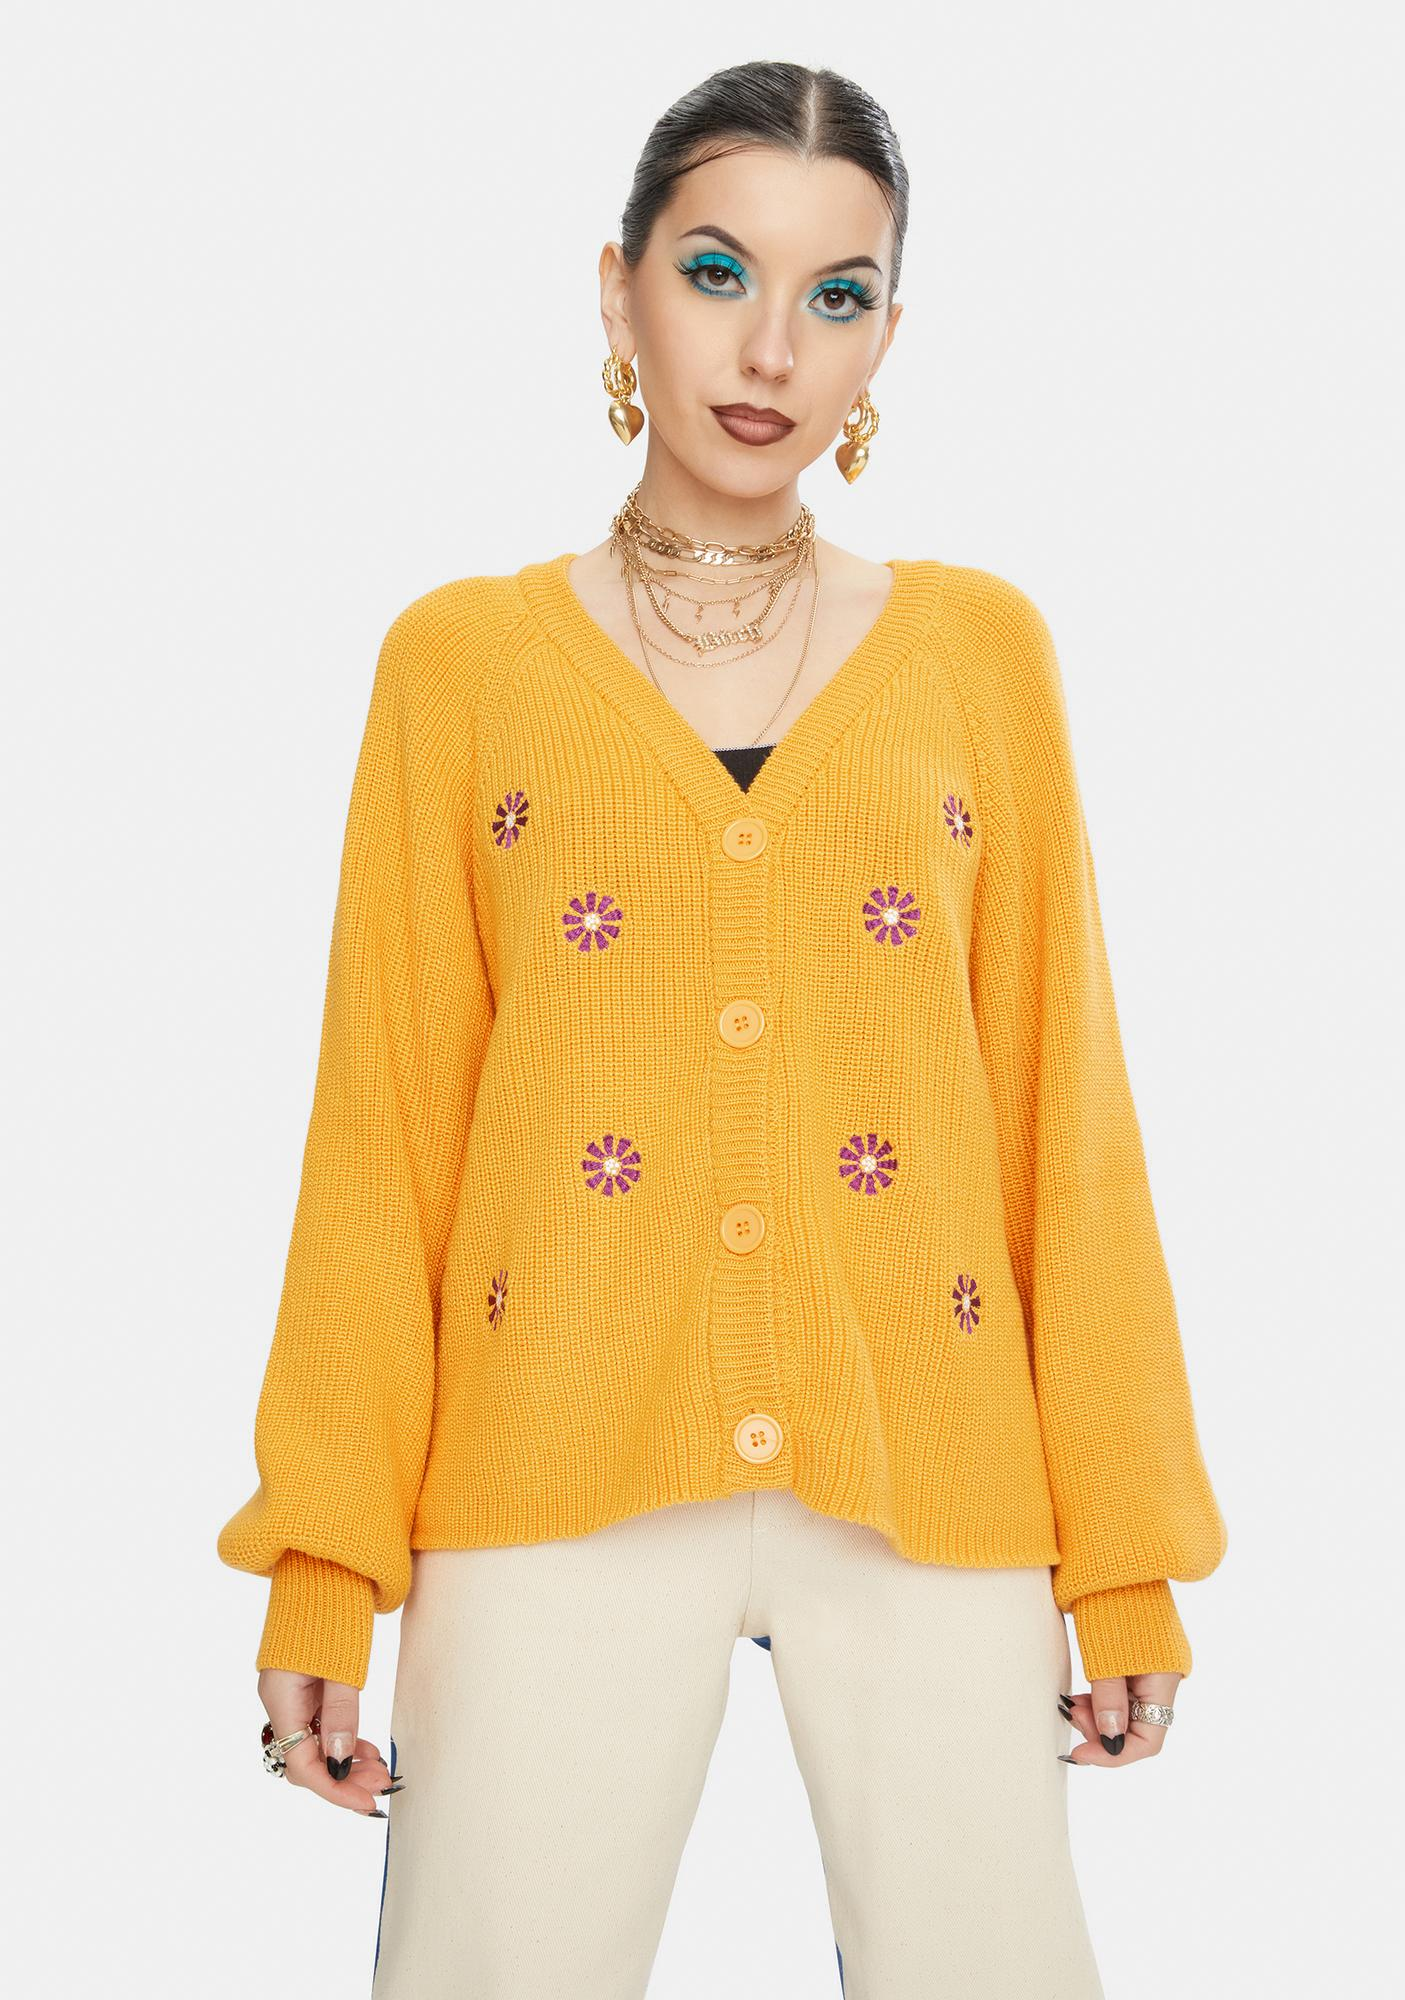 Daisy Street Carlie Embroidered Cardigan